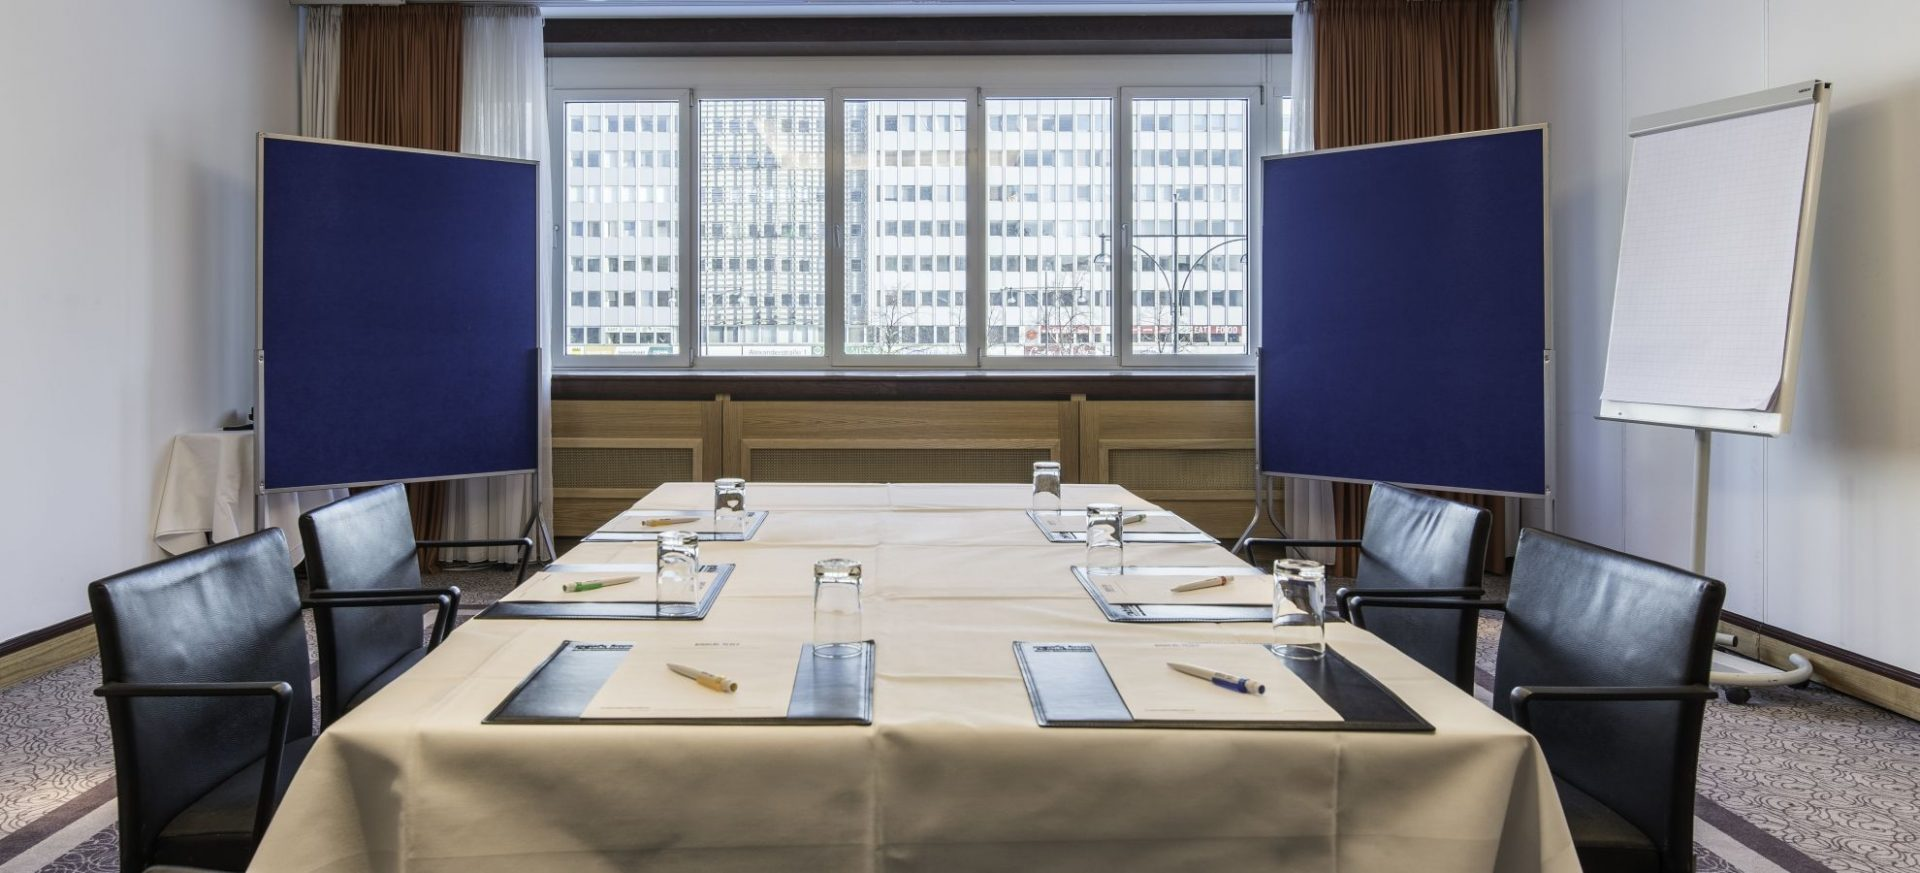 Boardroom in berlin